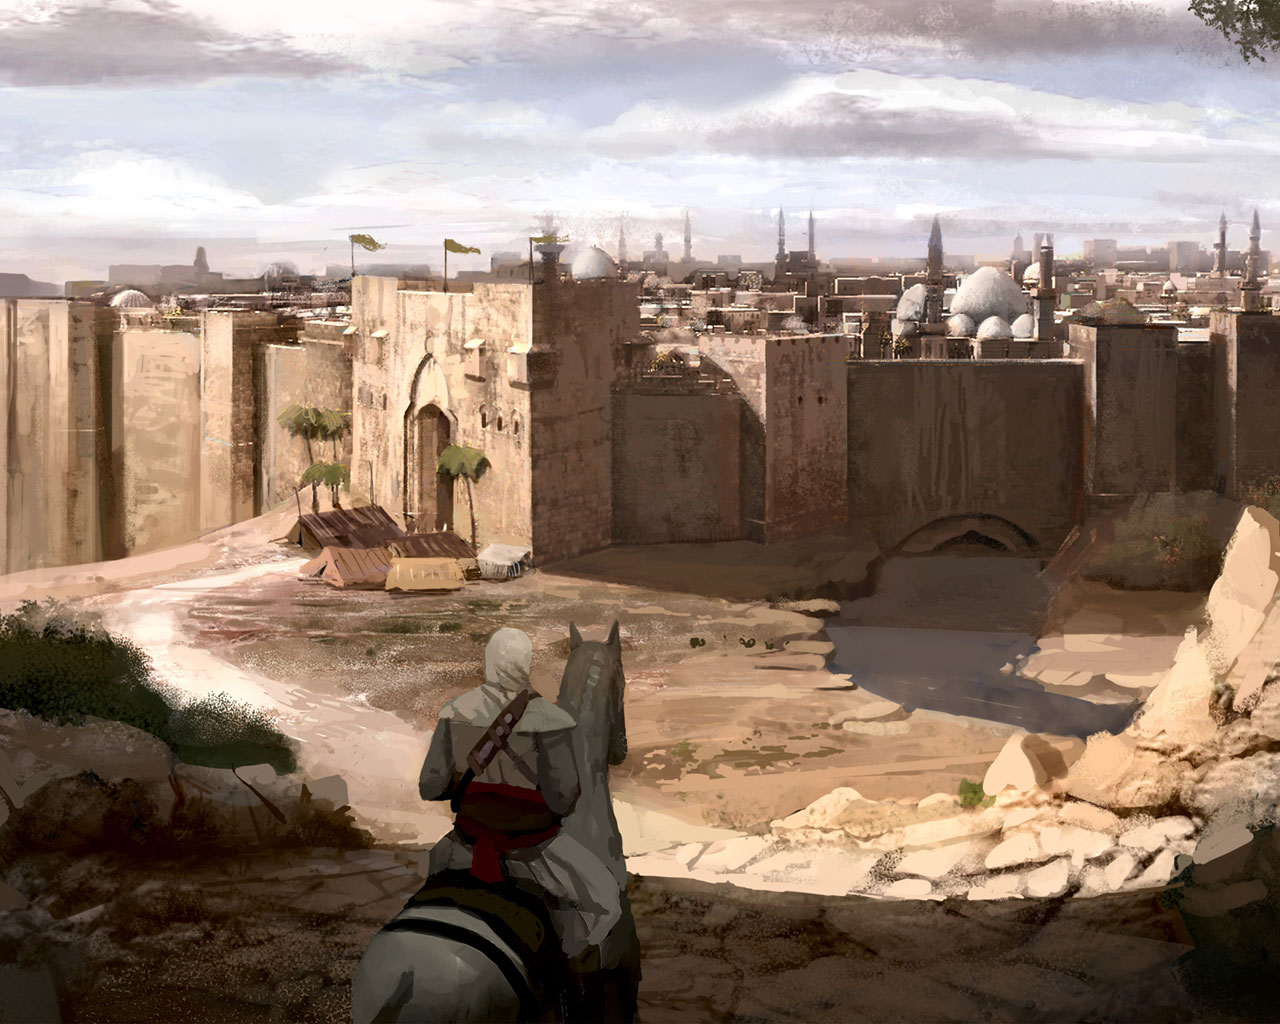 Ac1 Concept Art Wallpaper 9 Image Assassin S Creed Mod Db